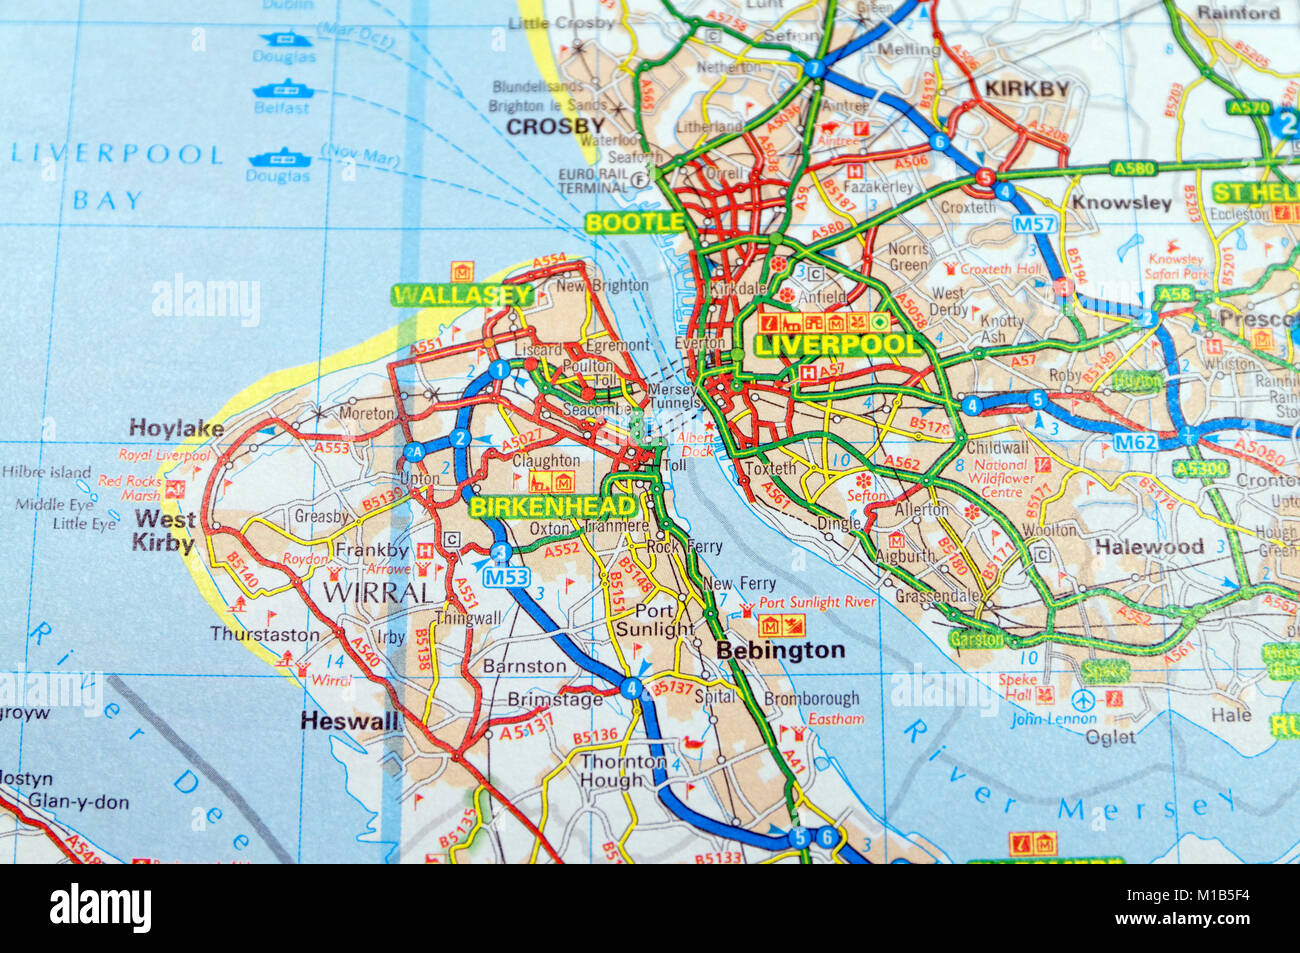 Road Map of Liverpool,England Stock Photo: 172964152 - Alamy